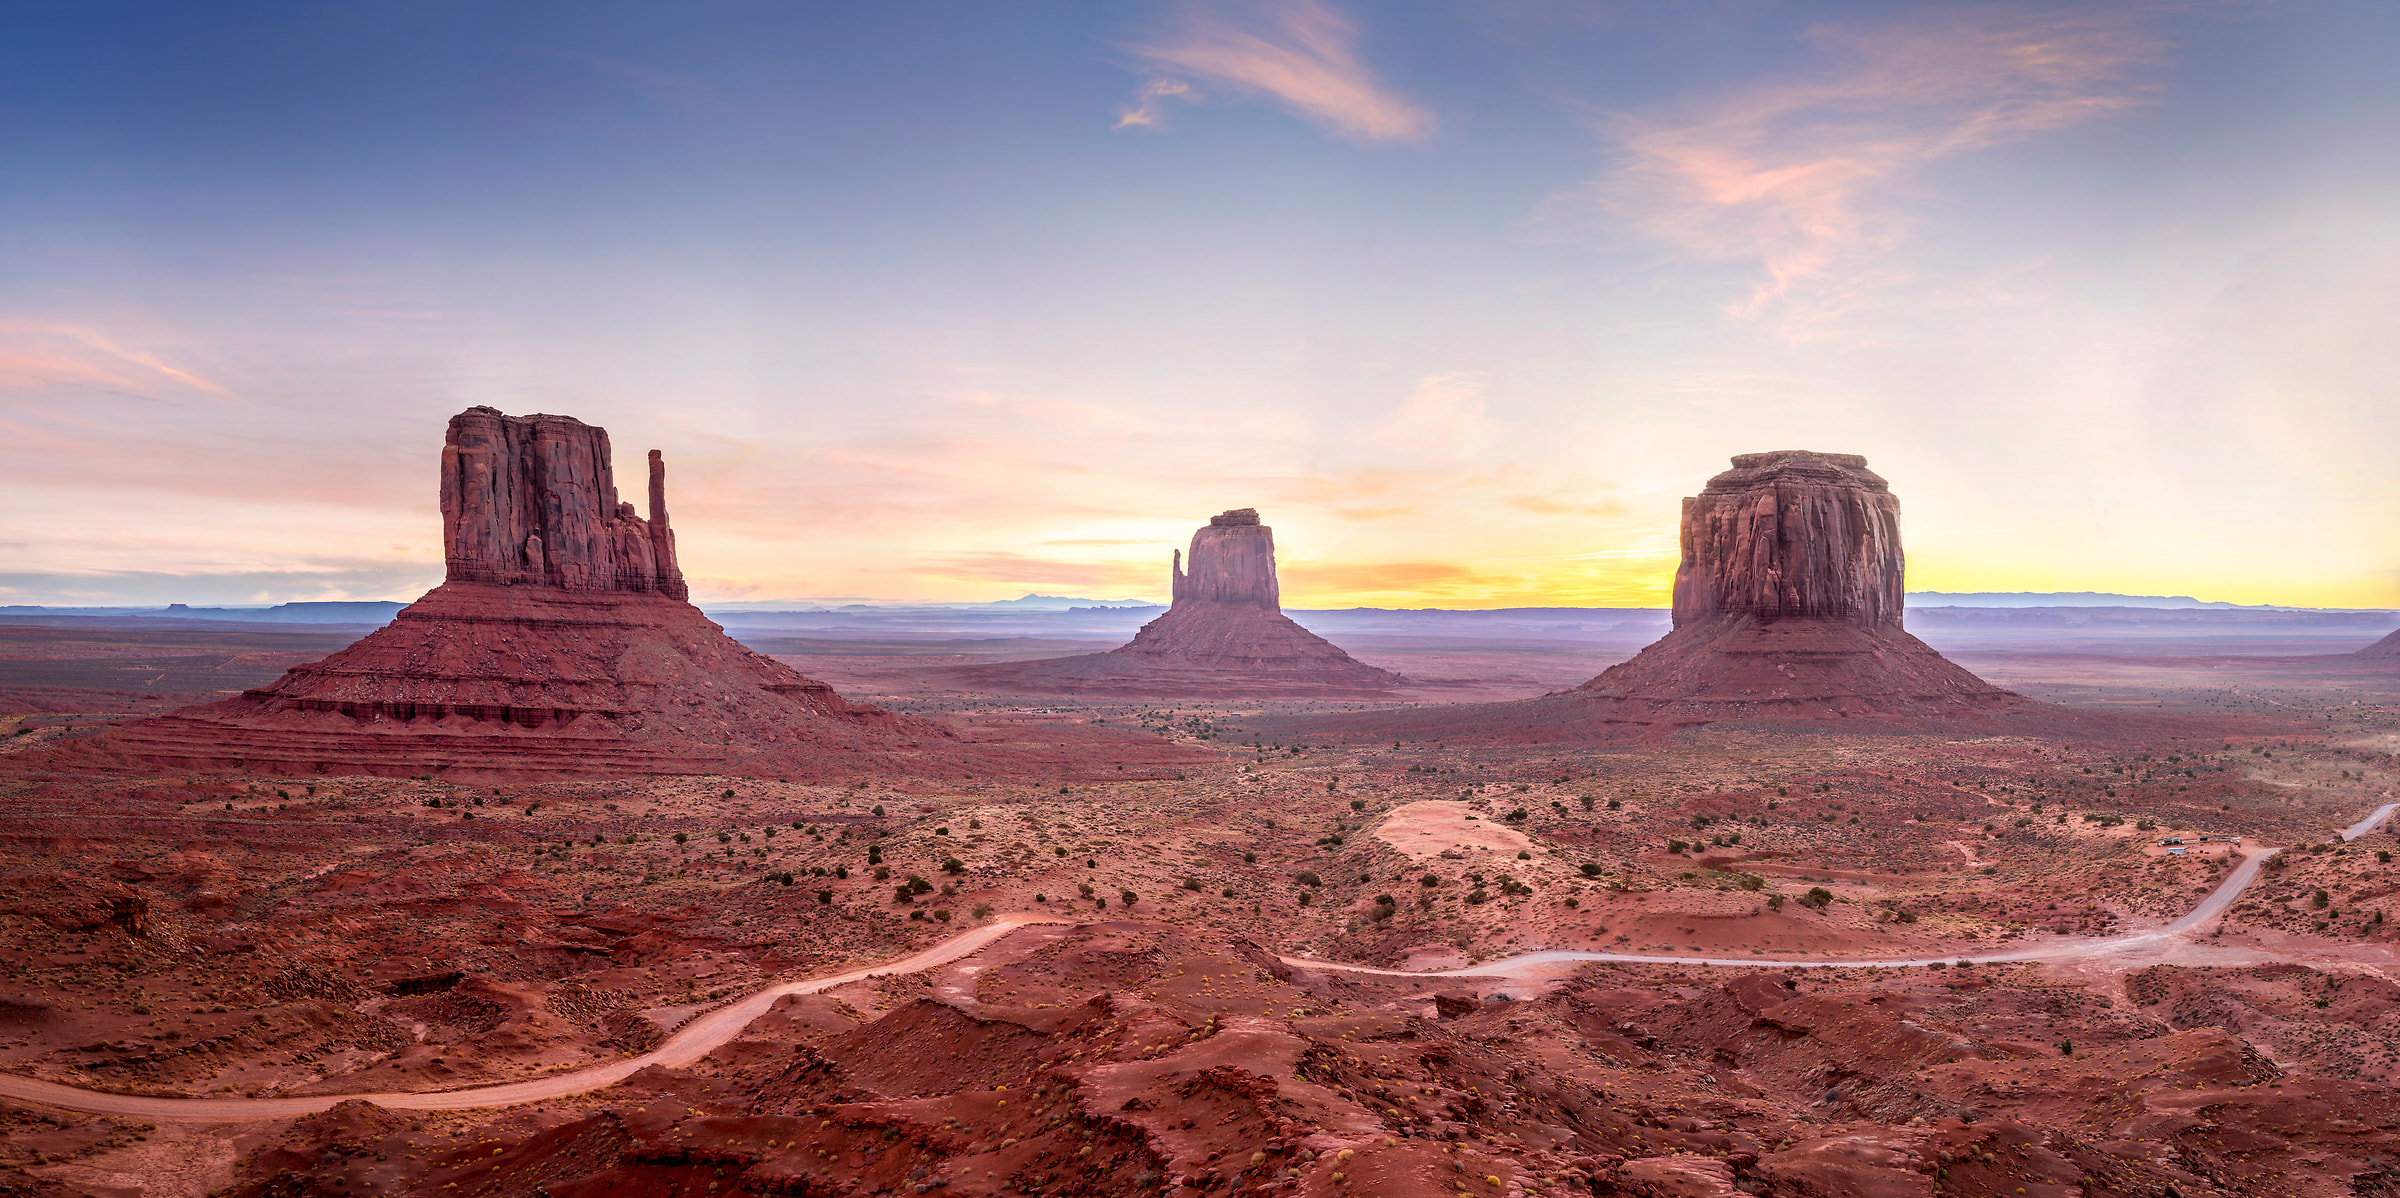 345 megapixels! A very high resolution, large-format VAST photo print of an American landscape scene from the western USA; photo created by Justin Katz in Monument Valley, Utah and Arizona